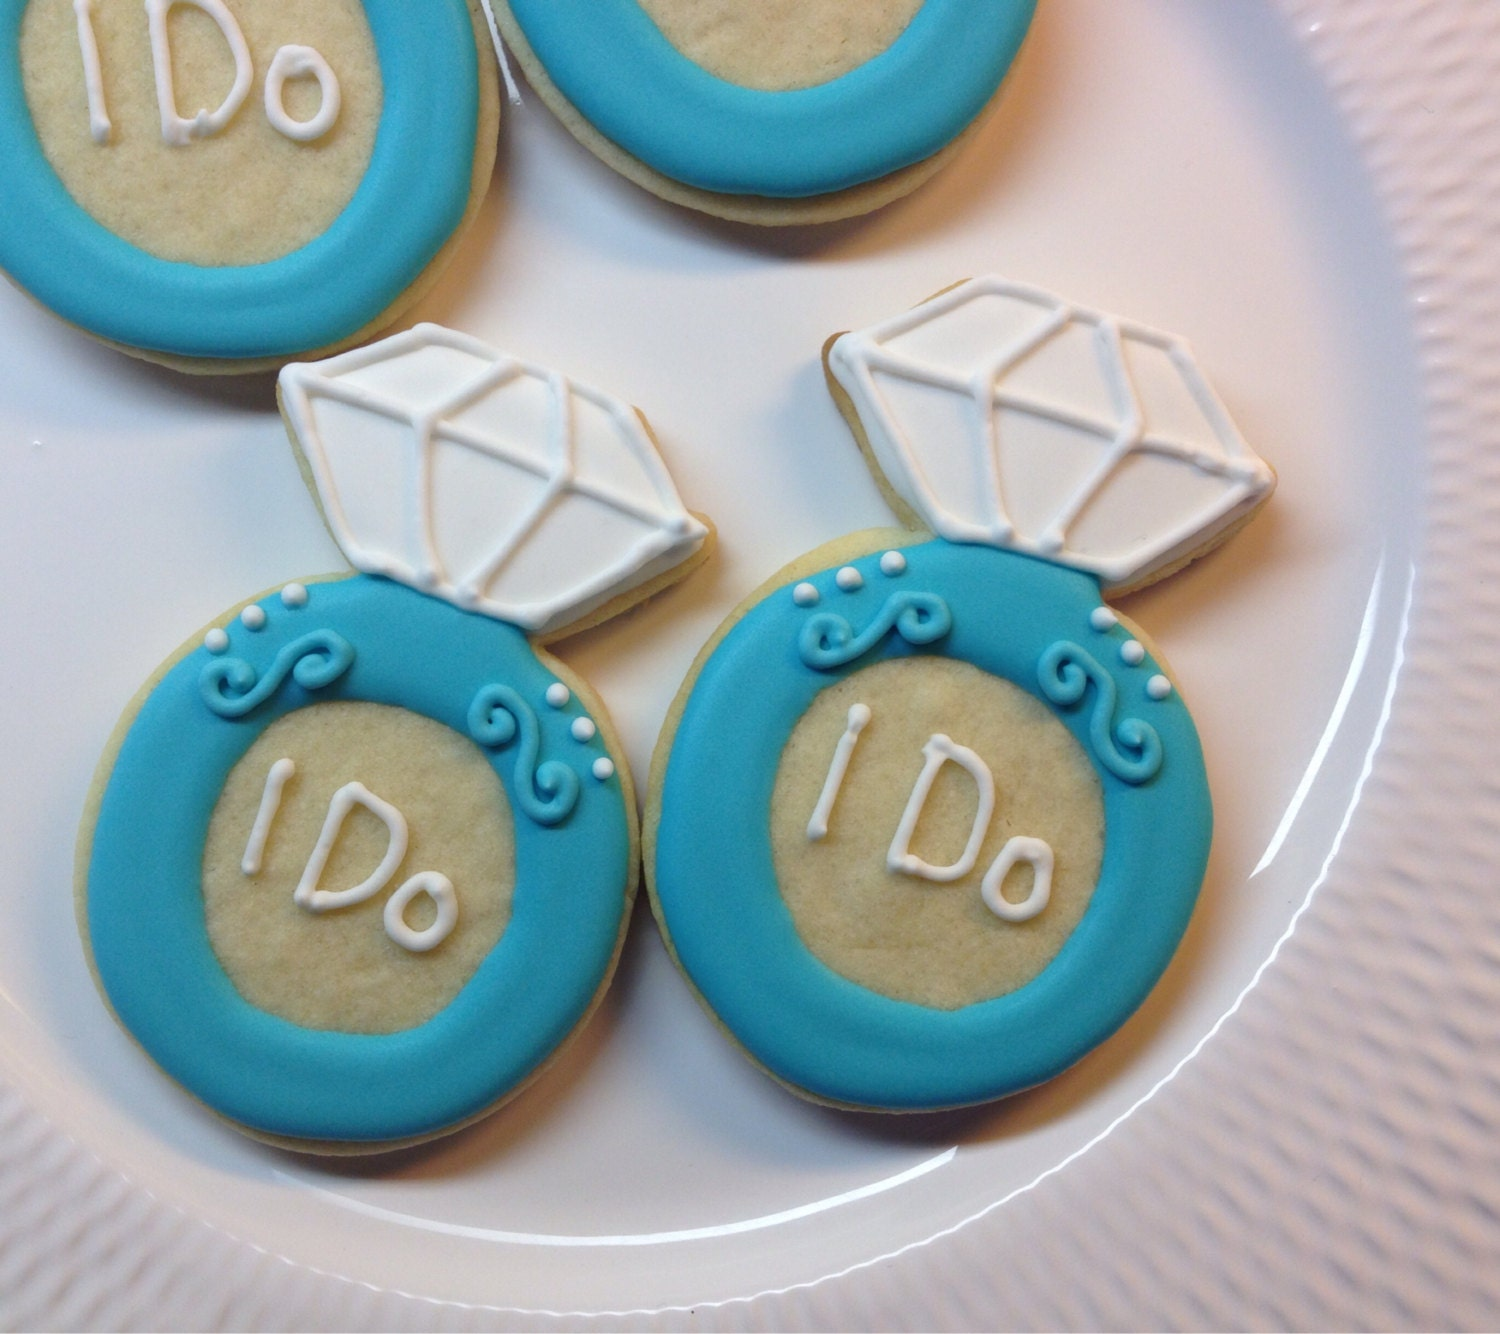 engagement ring cookie wedding cookie by bakedbytoni on etsy